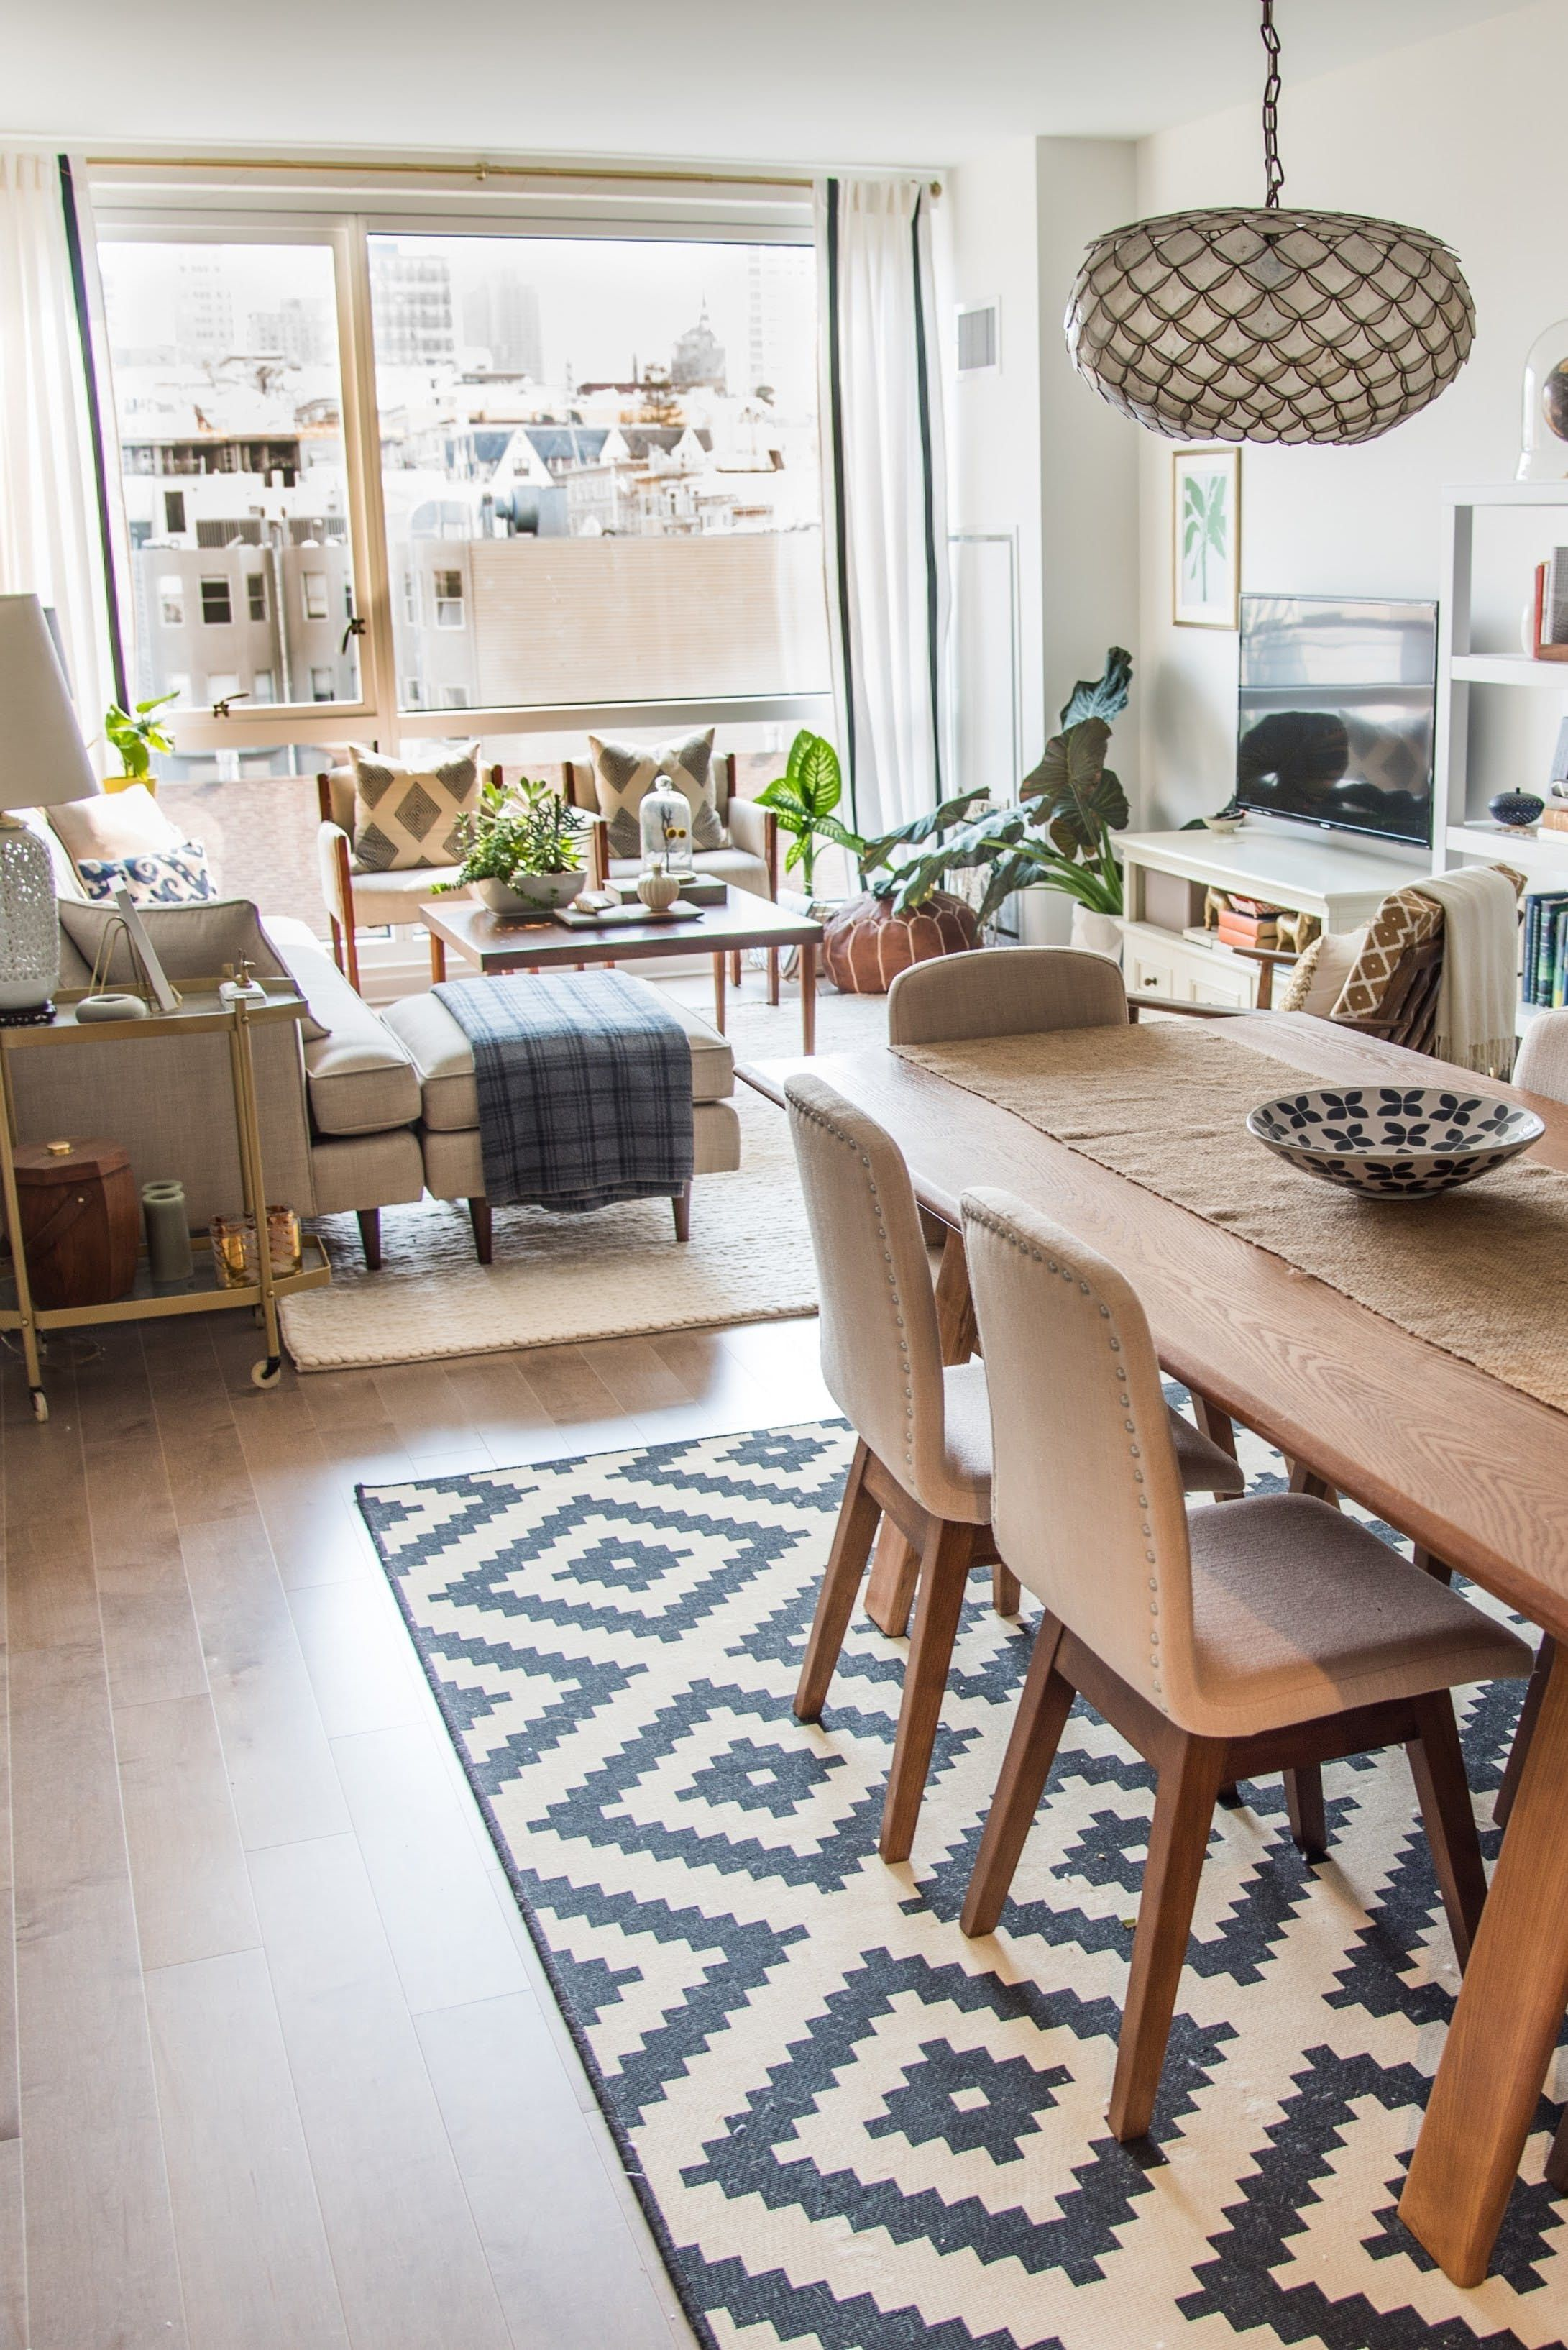 Design You Room: Jeni's Mixed & Matched San Francisco Apartment